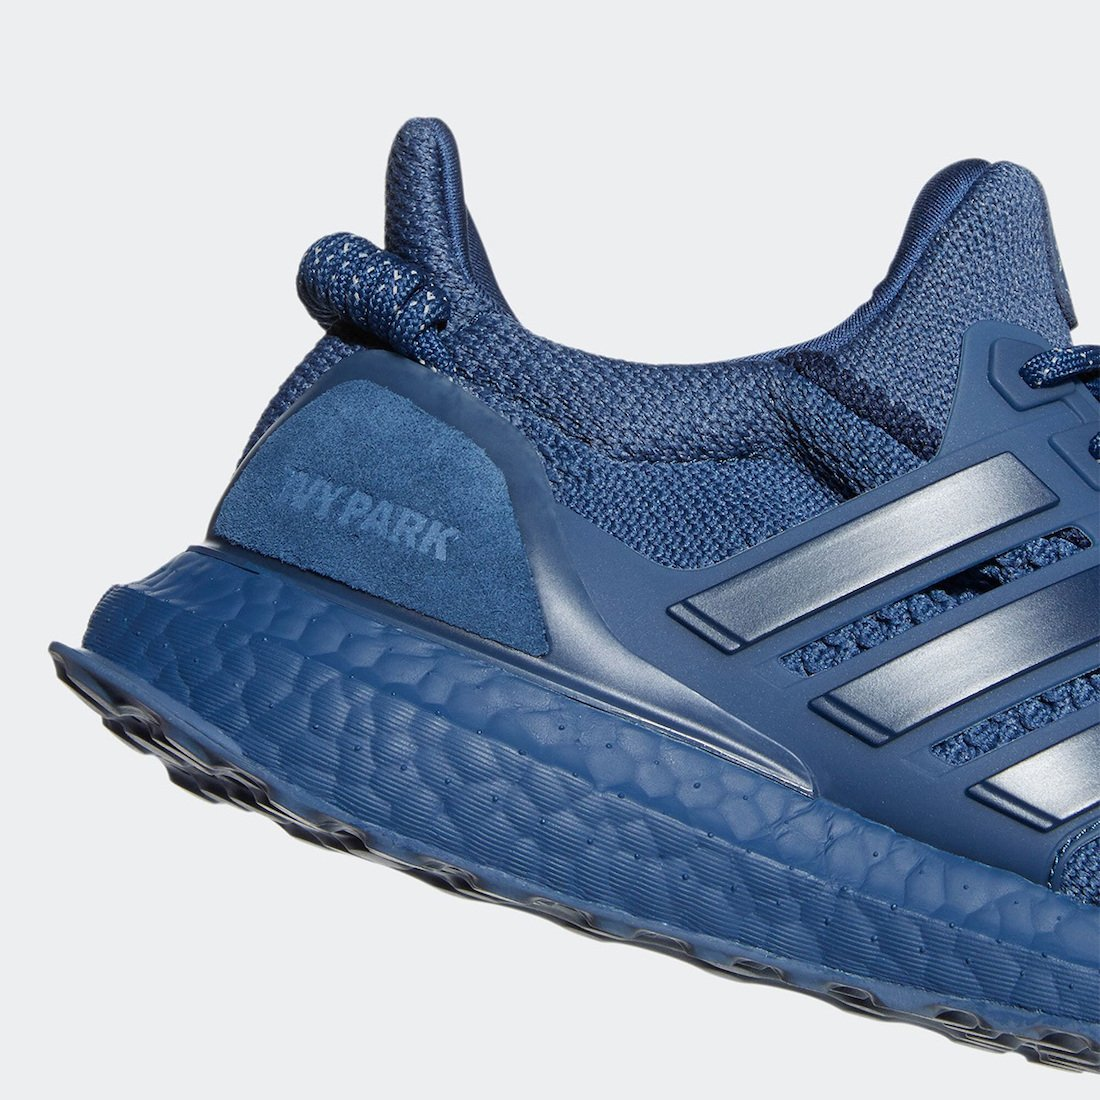 Beyonce Ivy Park adidas Ultra Boost GW8682 Release Date Info